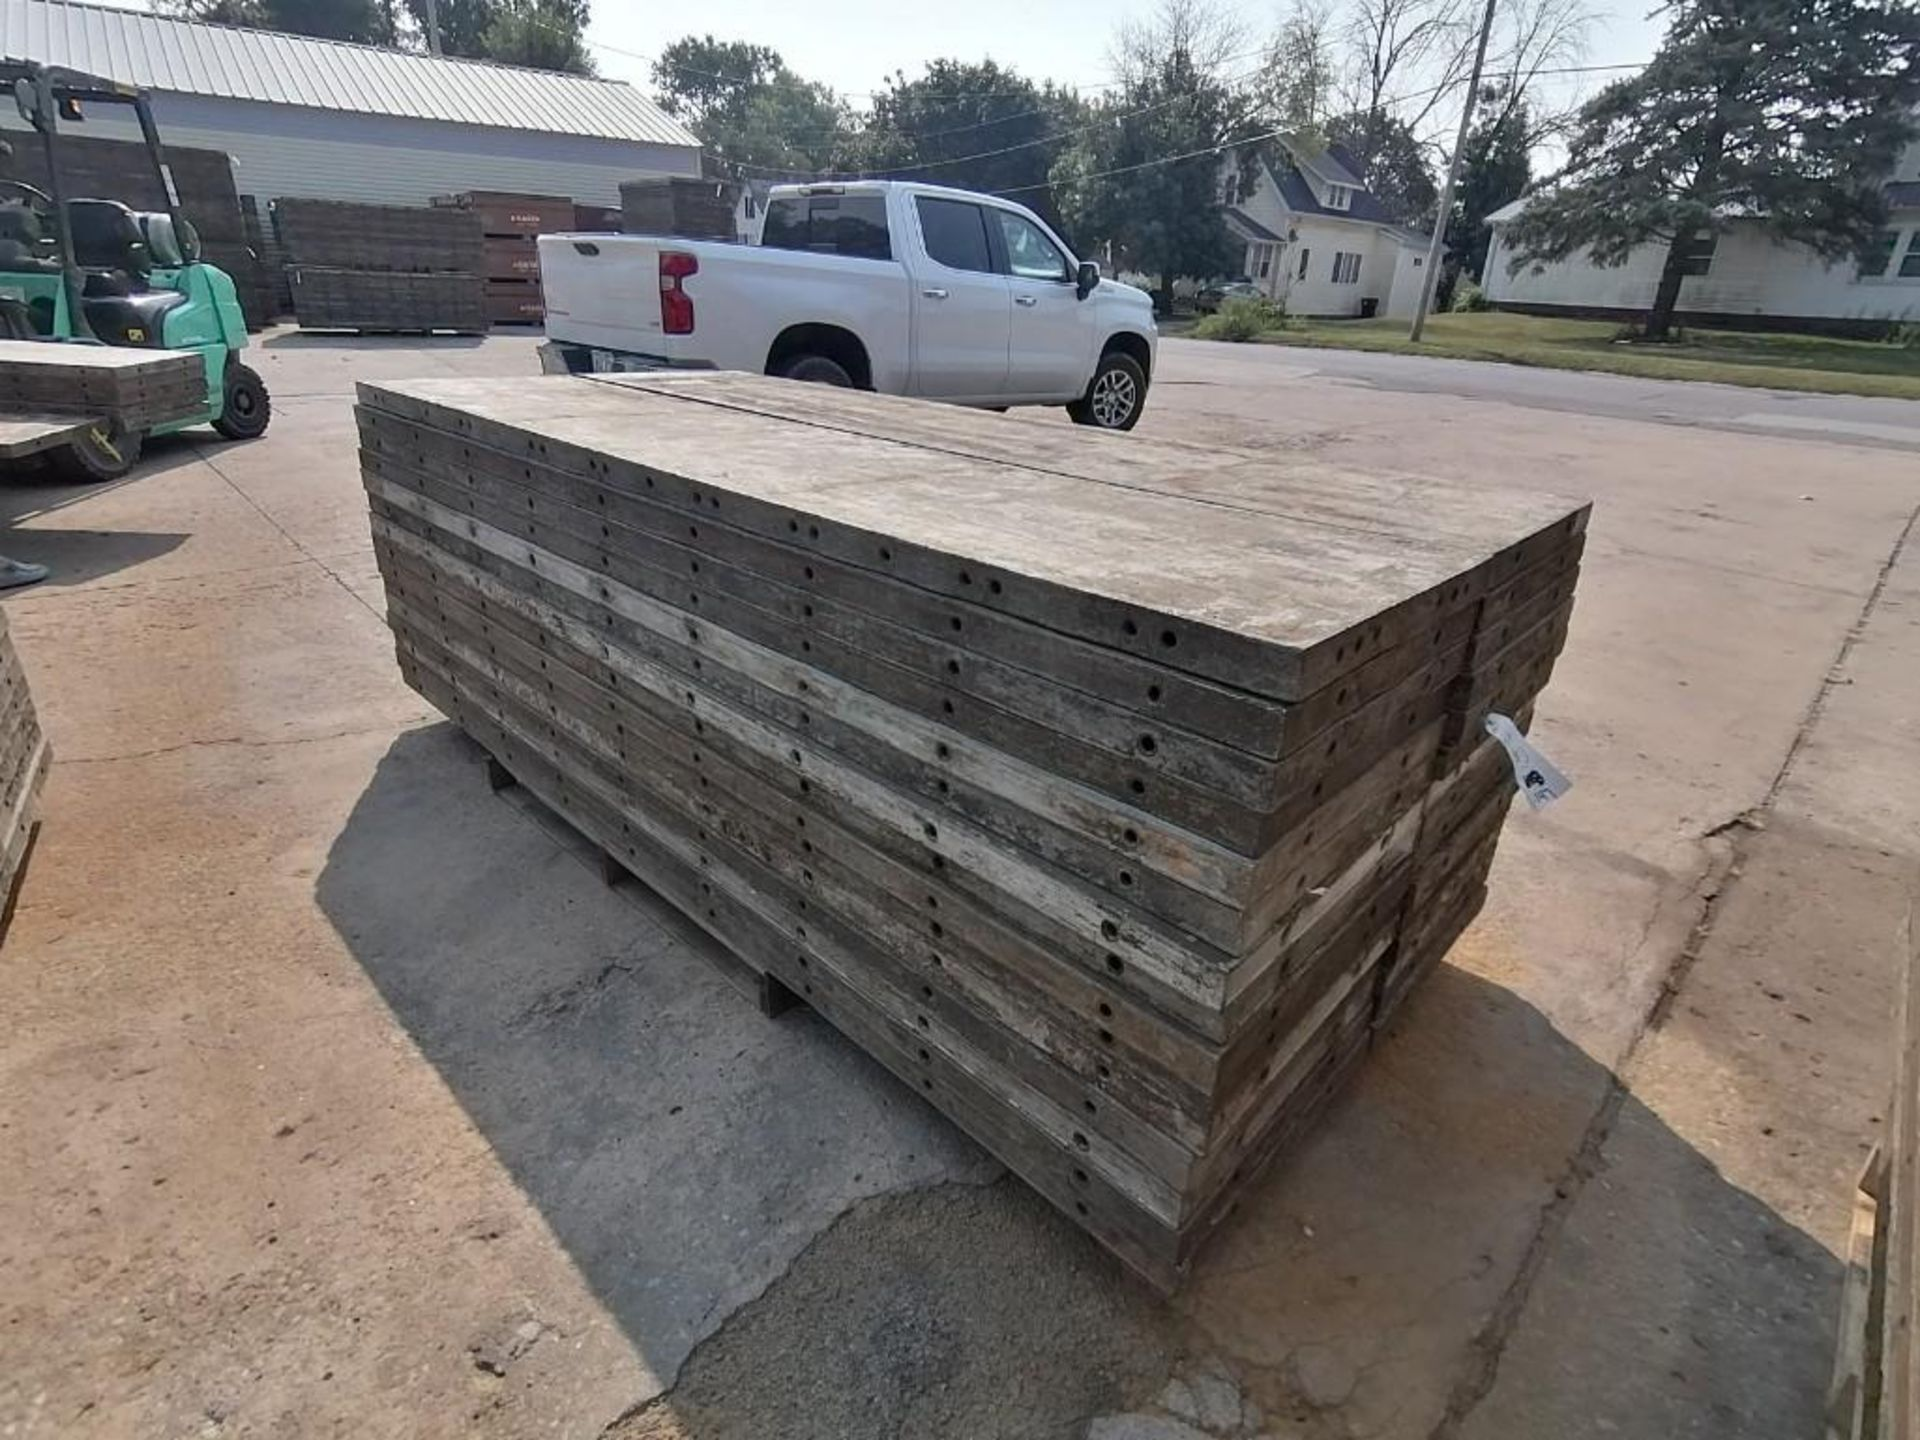 Lot 137 - (30) 2' x 9' Wall-Ties Aluminum Concrete Forms, Laydowns, Smooth 6-12 Hole Pattern. Located at 301 E